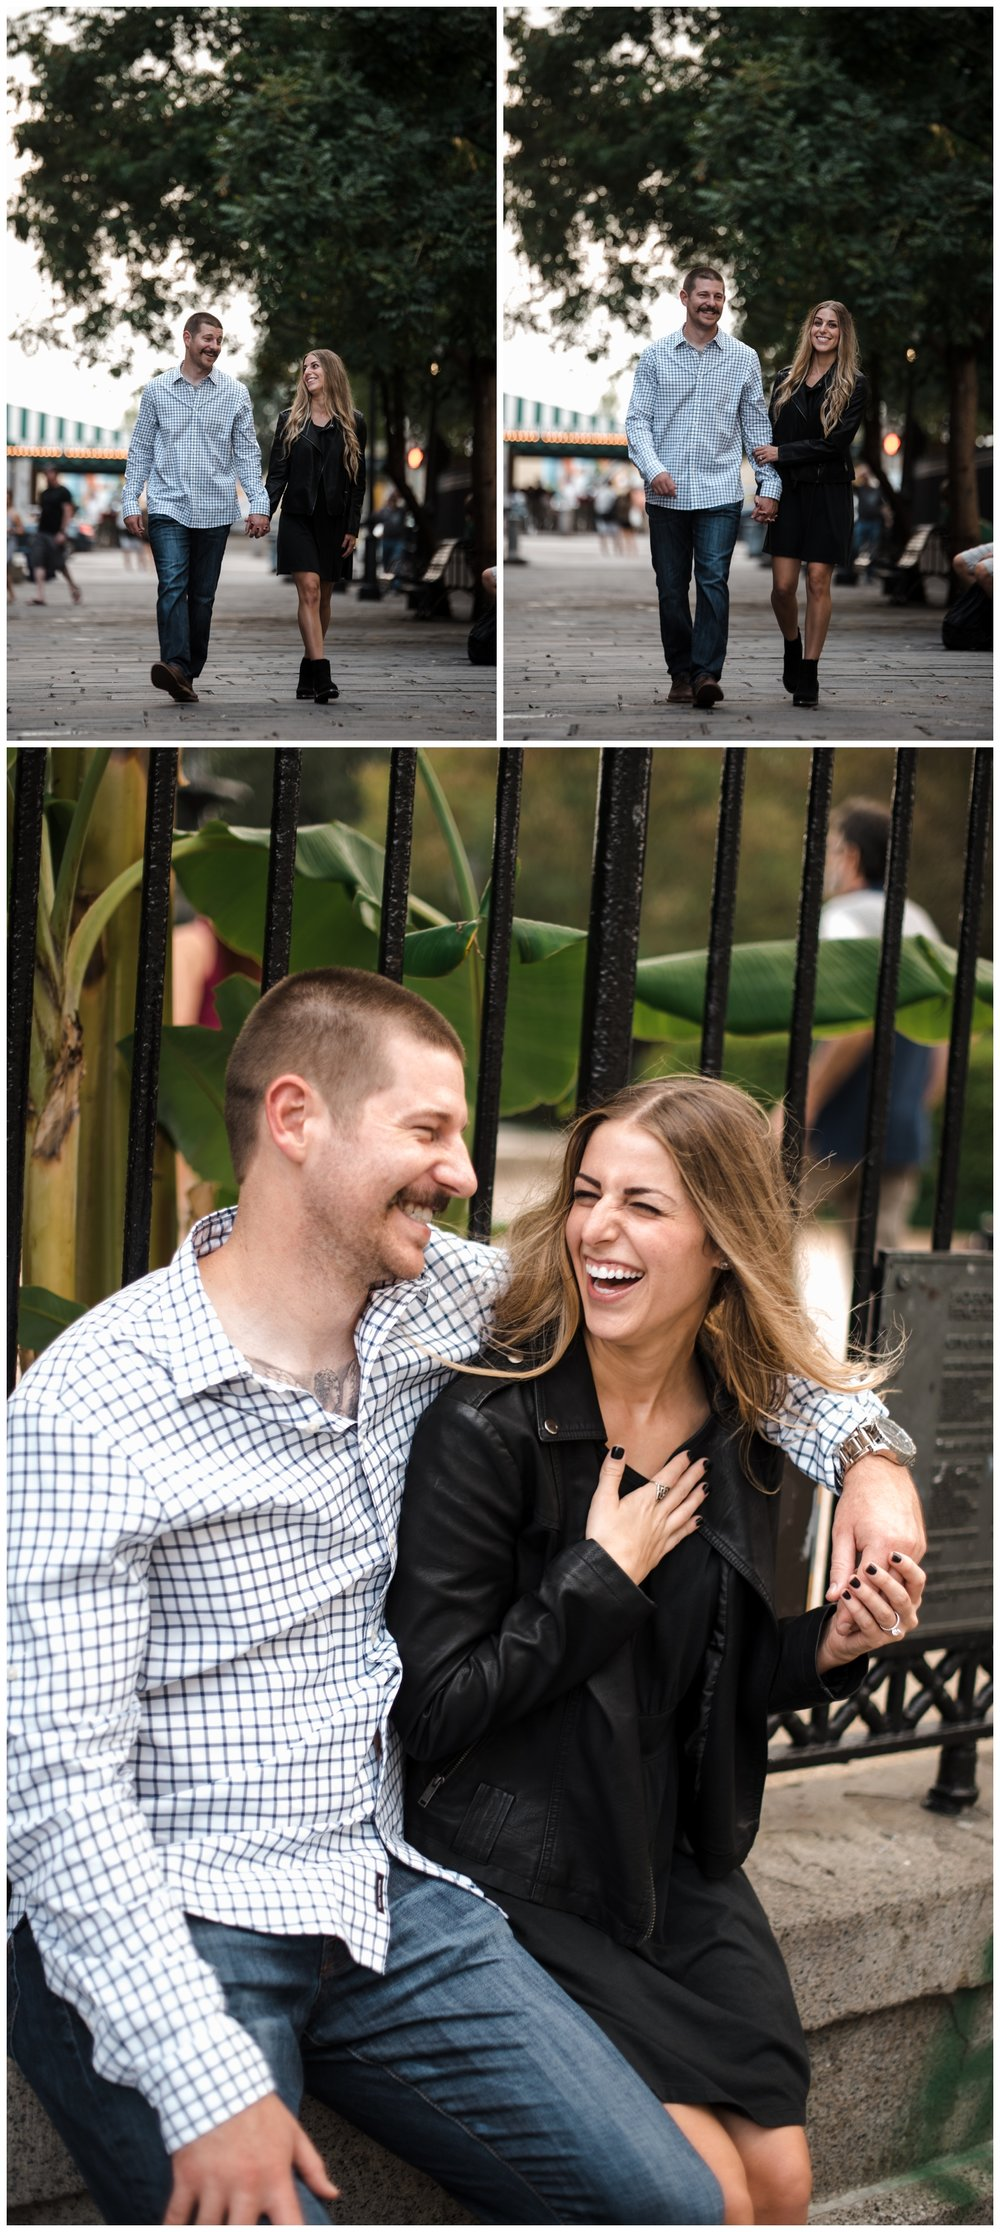 New-Orleans-Engagement-photos- French-Quarter-Proposal-New-Orleans-Photographer- kallistia-photography_0007.jpg